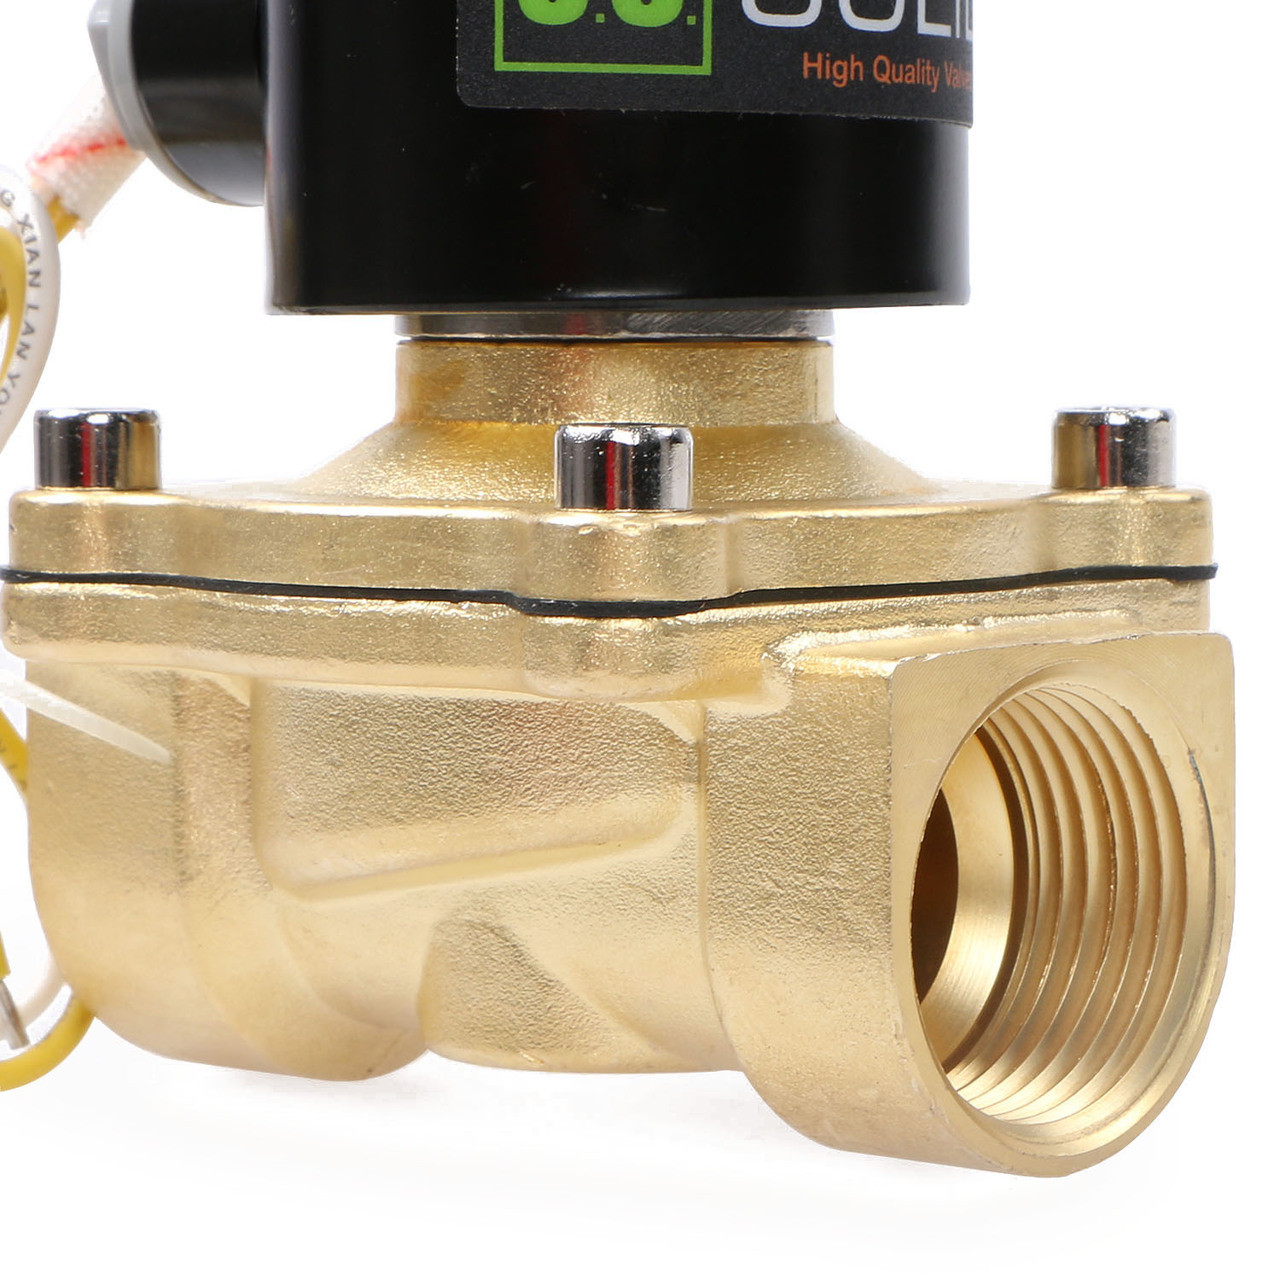 "U.S. Solid Electric Solenoid Valve- 1"" 110V AC Solenoid Valve Brass Body Normally Closed, NBR SEAL"